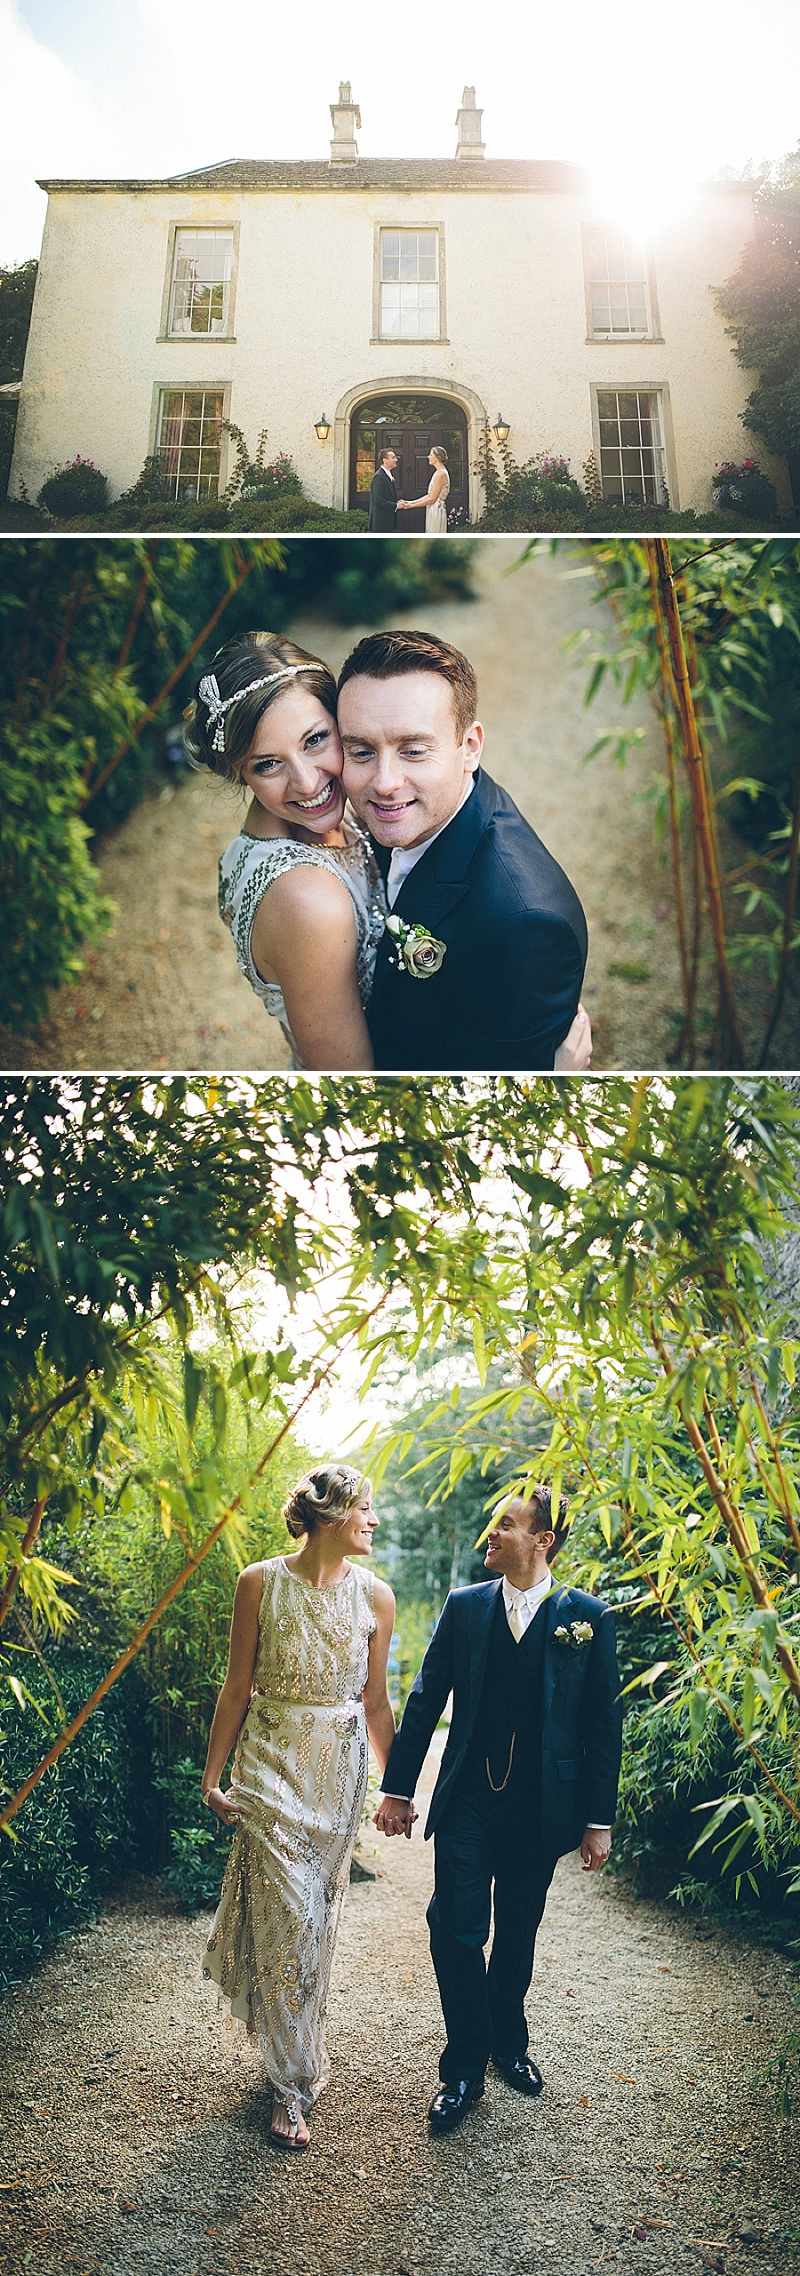 Art Deco and 1920s Inspired Wedding At The Matara Centre Gloucestershire With Bride In Joy By Jenny Packham and Bridesmaids in No 1 by Jenny Packham At Debenhams With Vintage Details and Speakeasy Themed Cocktails 7